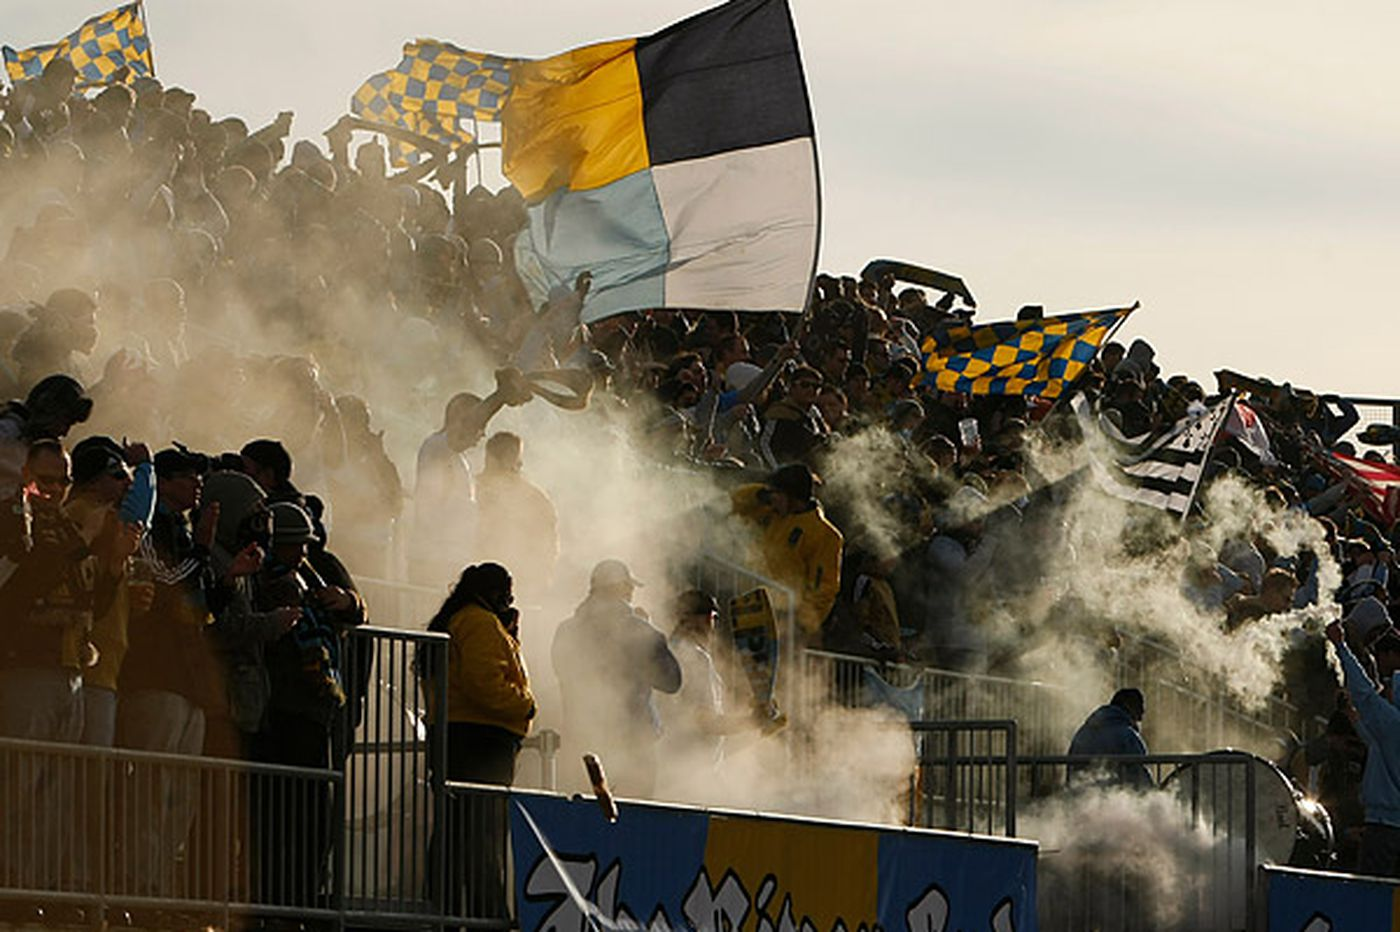 Philadelphia Union to kick off 2013 Major League Soccer season with home game against Sporting Kansas City